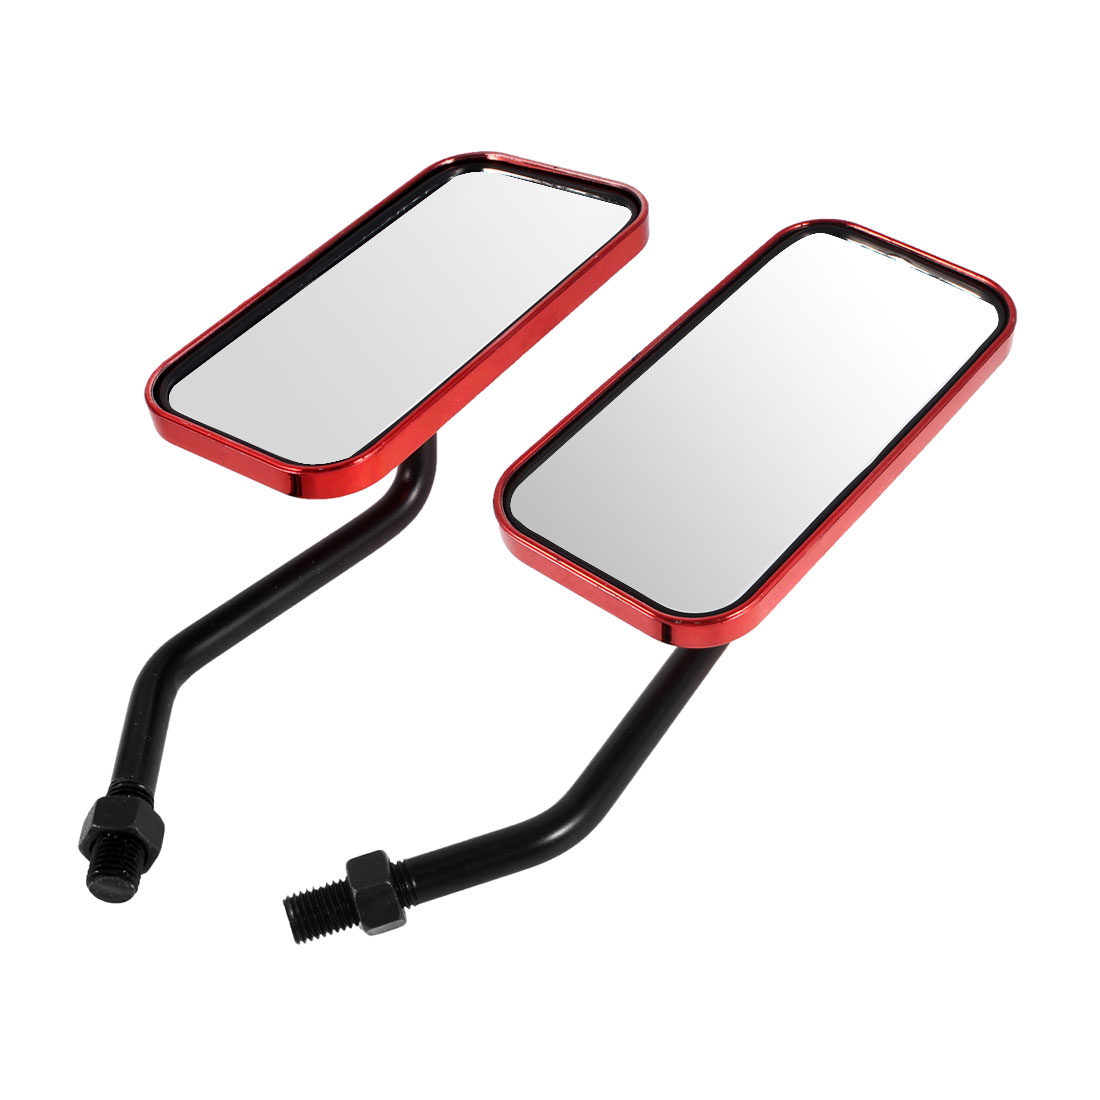 2 Pcs Red Plastic Casing Motorcycle Side Rearview Blind Spot Mirror